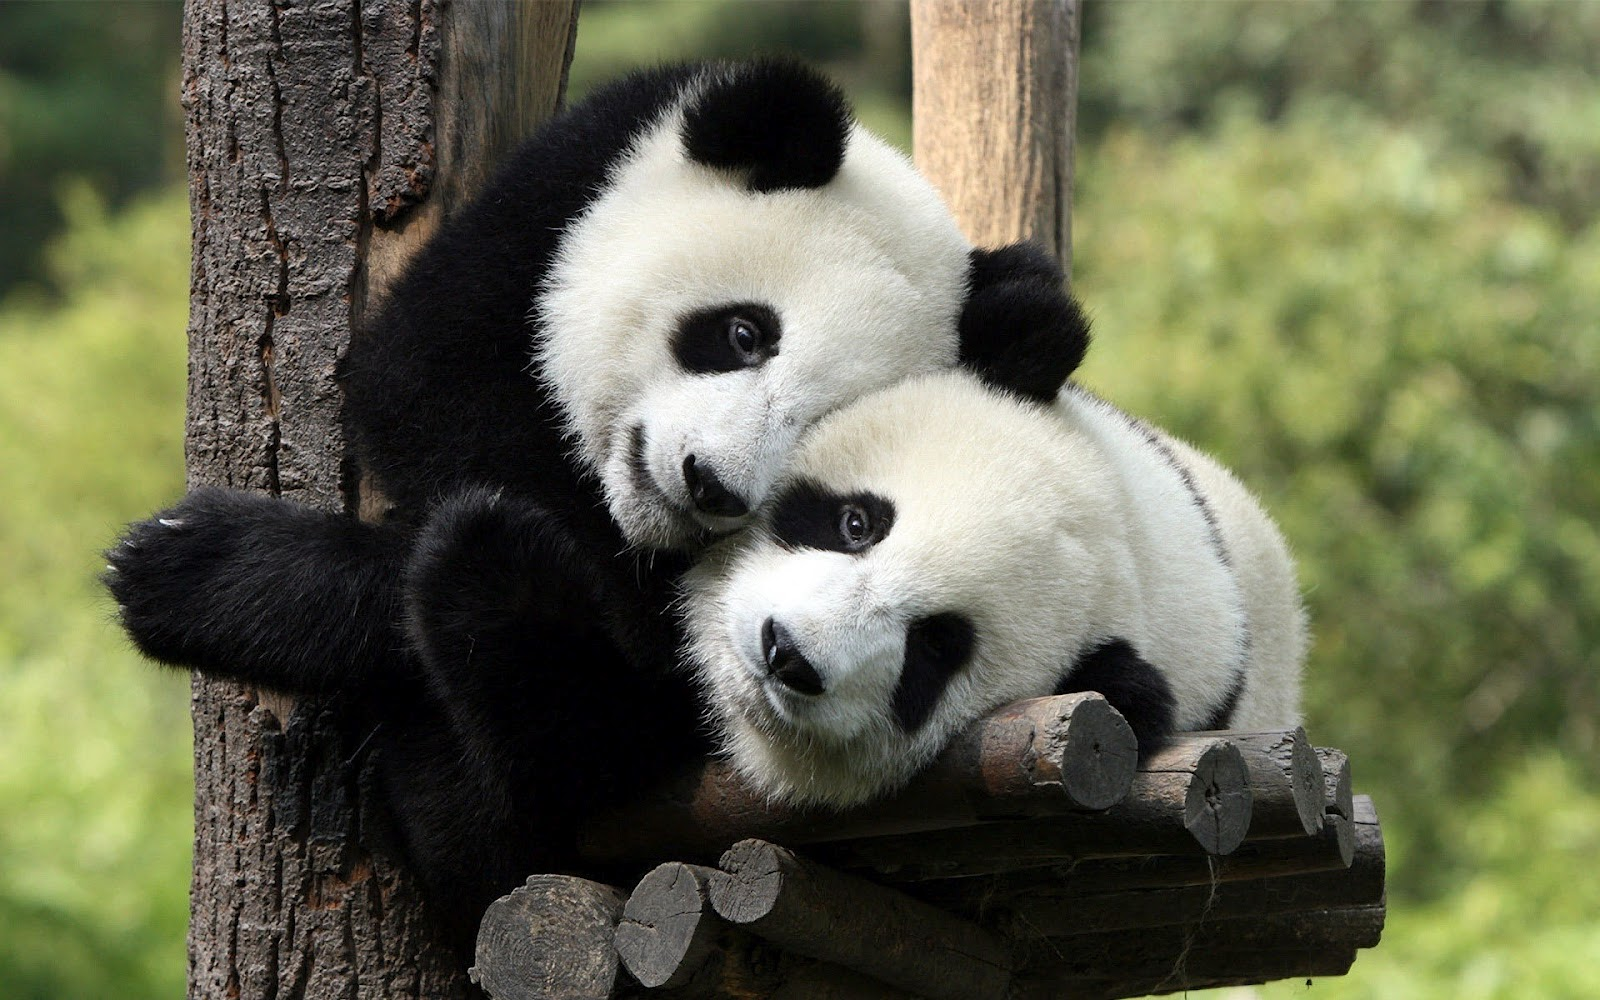 animal wallpaper of two panda bears in a tree Panda bear wallpaper 1600x1000